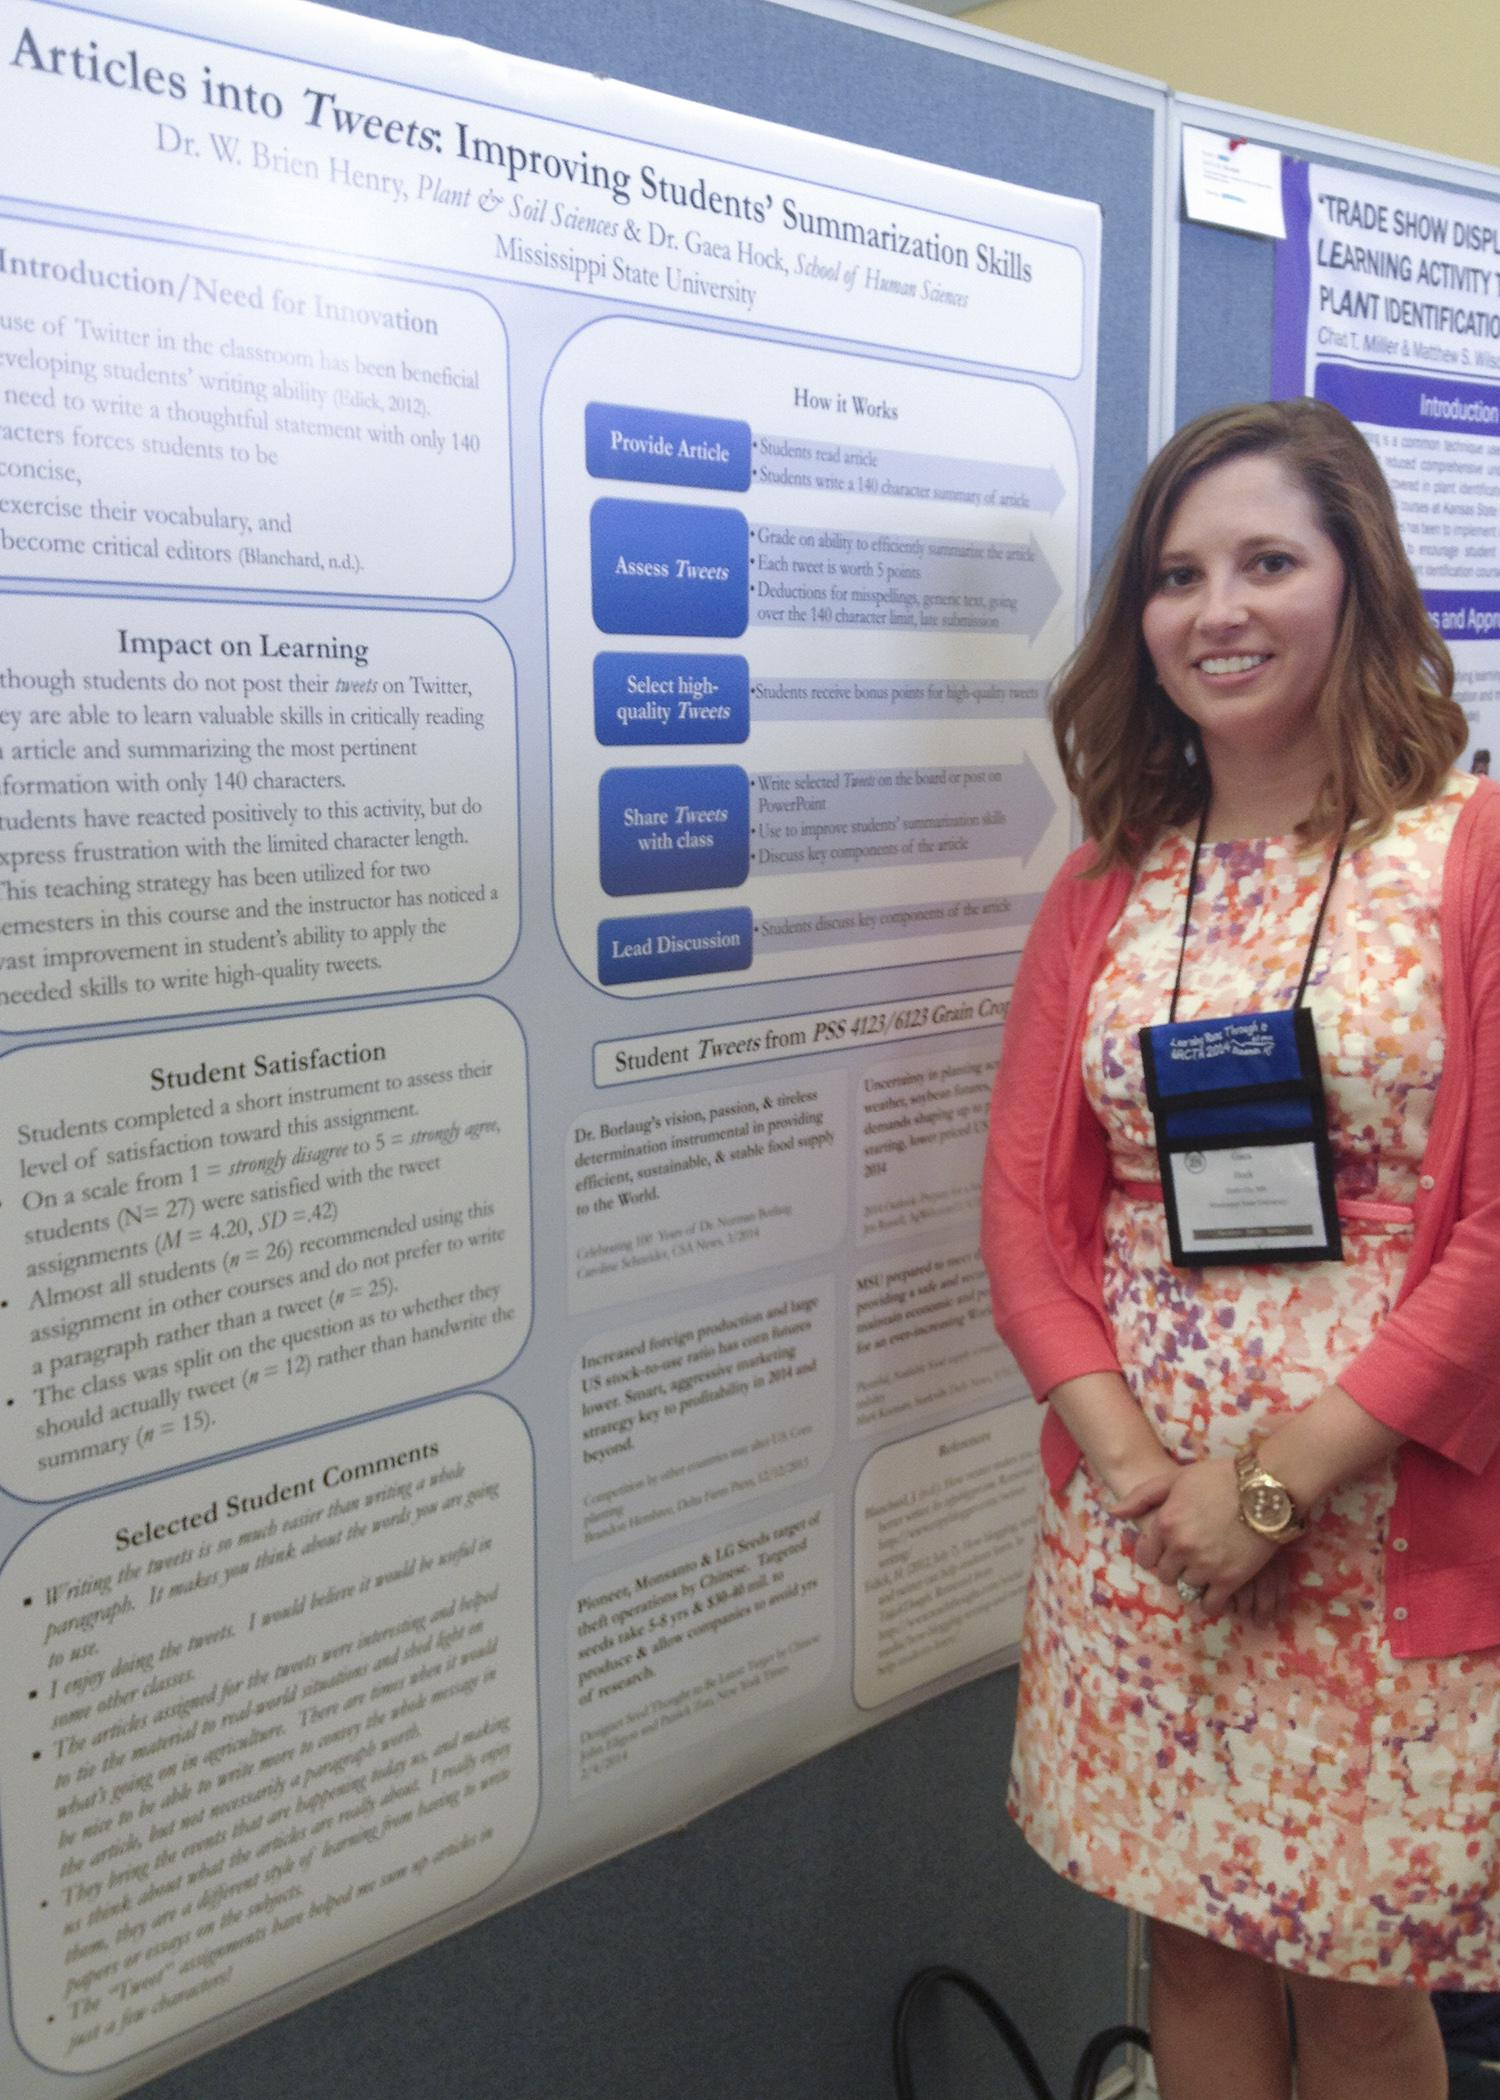 Mississippi State University scientist Gaea Hock evaluated student satisfaction with a class that required them to summarize as social media tweets news articles written about grain crops. She presented her findings at the 60th Annual North American Colleges and Teachers of Agriculture Conference in June. (Submitted Photo)